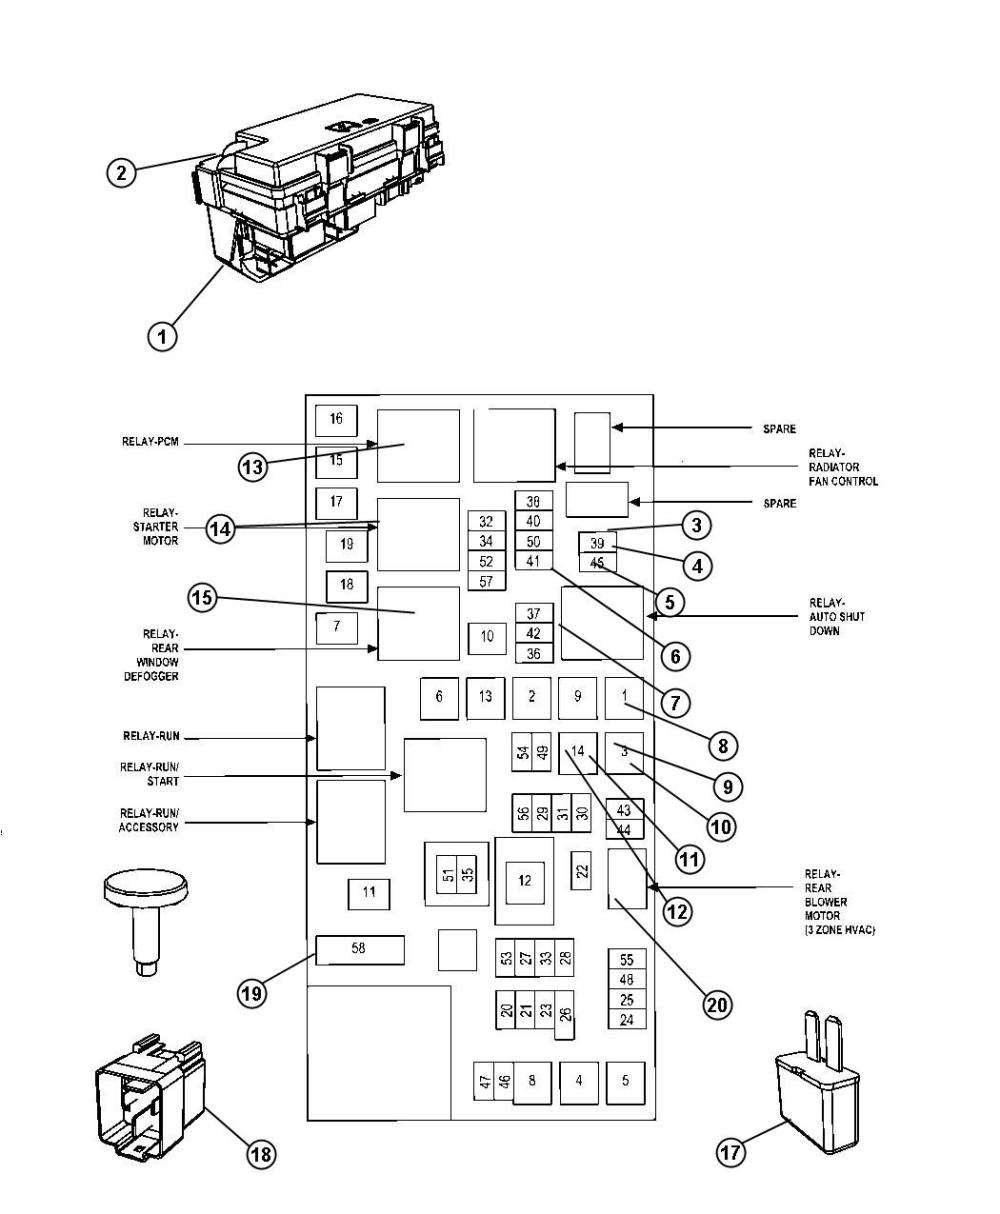 medium resolution of dodge journey horn location get free image about wiring chrysler neon 2002 fuse box diagram